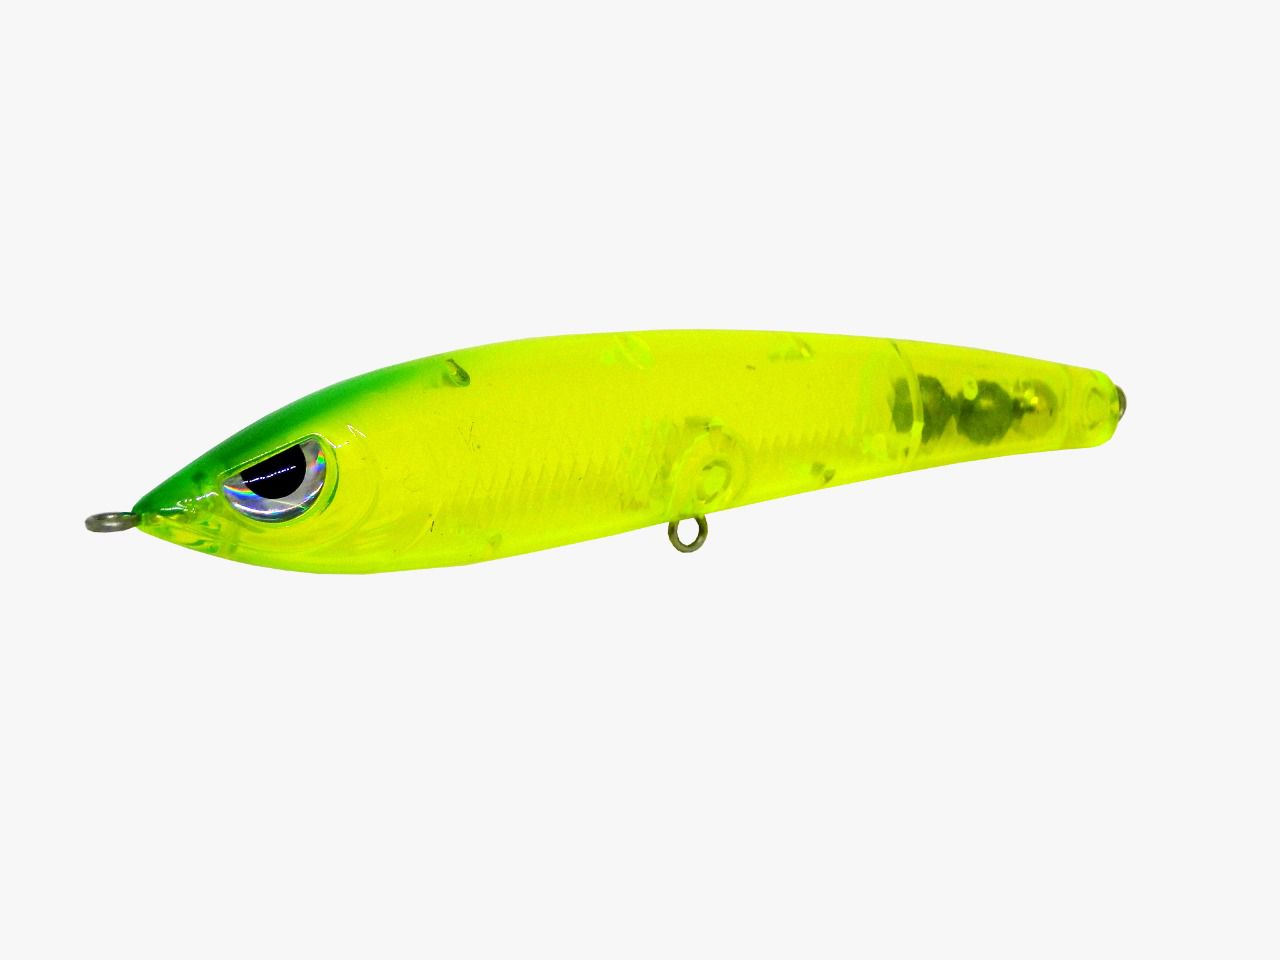 Isca Artificial Hunter Bait 11cm Verde Transparente 14g Yara